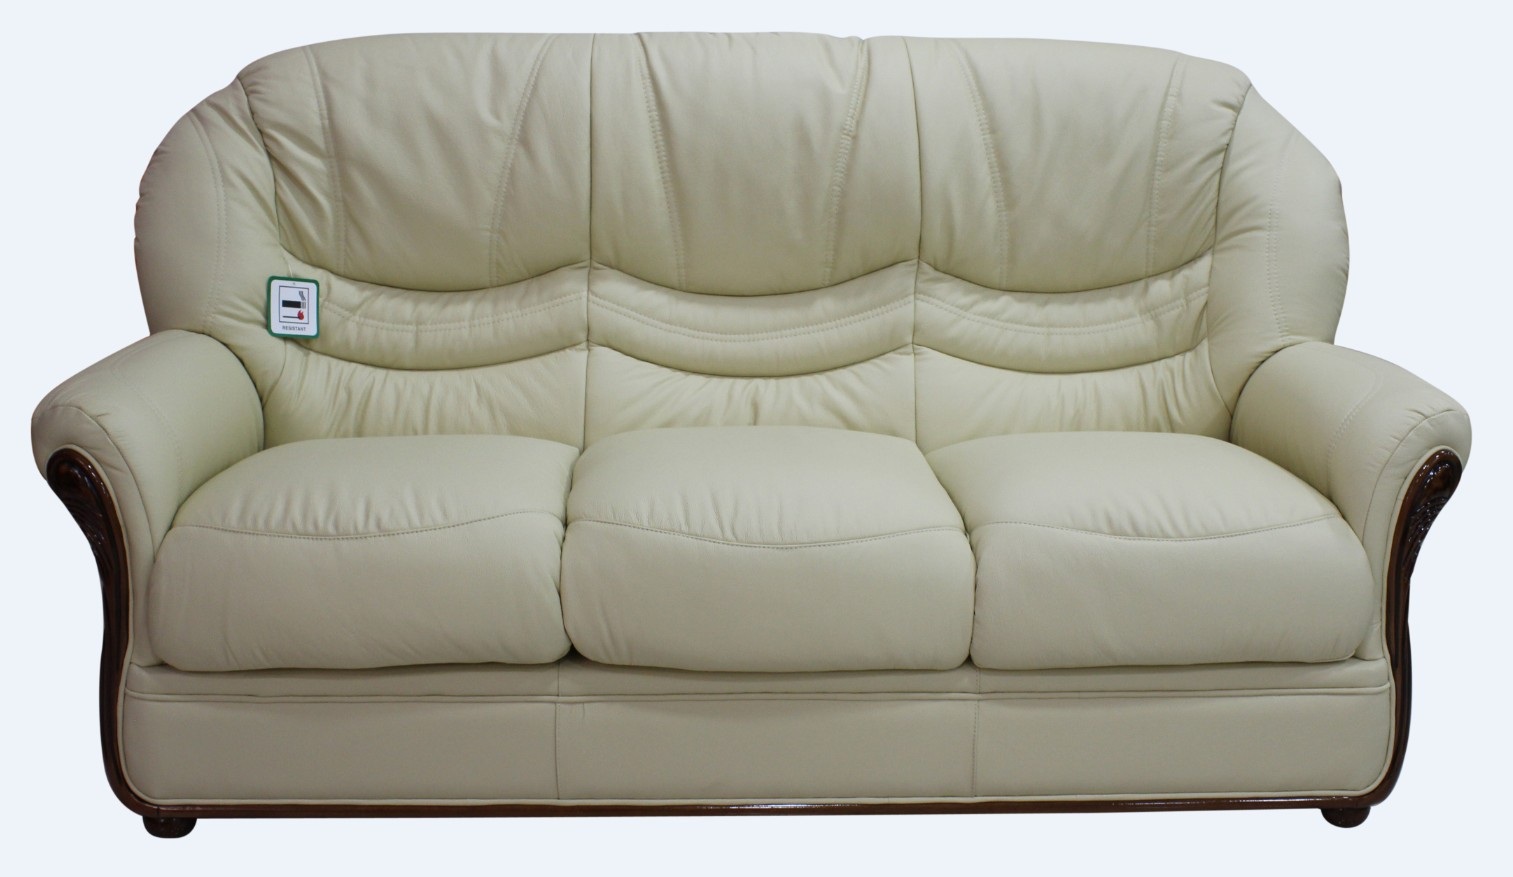 Awesome Best Genuine Italian Leather 3 Seater Sofa Settee Cream Pabps2019 Chair Design Images Pabps2019Com